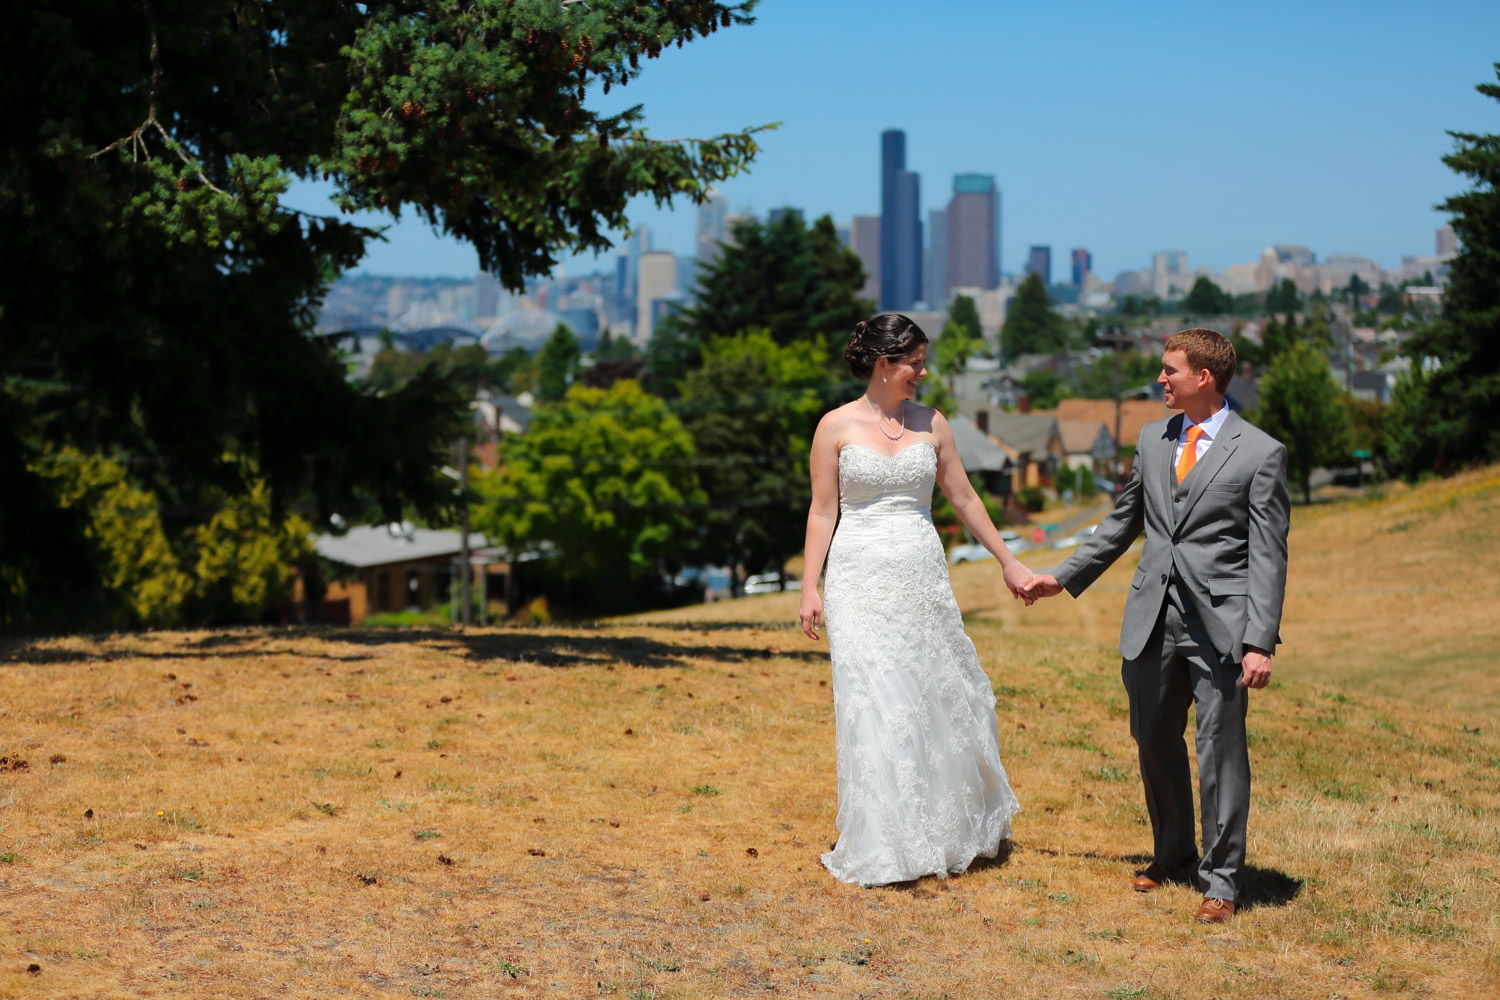 Wedding Photos Seattle Design Center Seattle Washington06.jpg